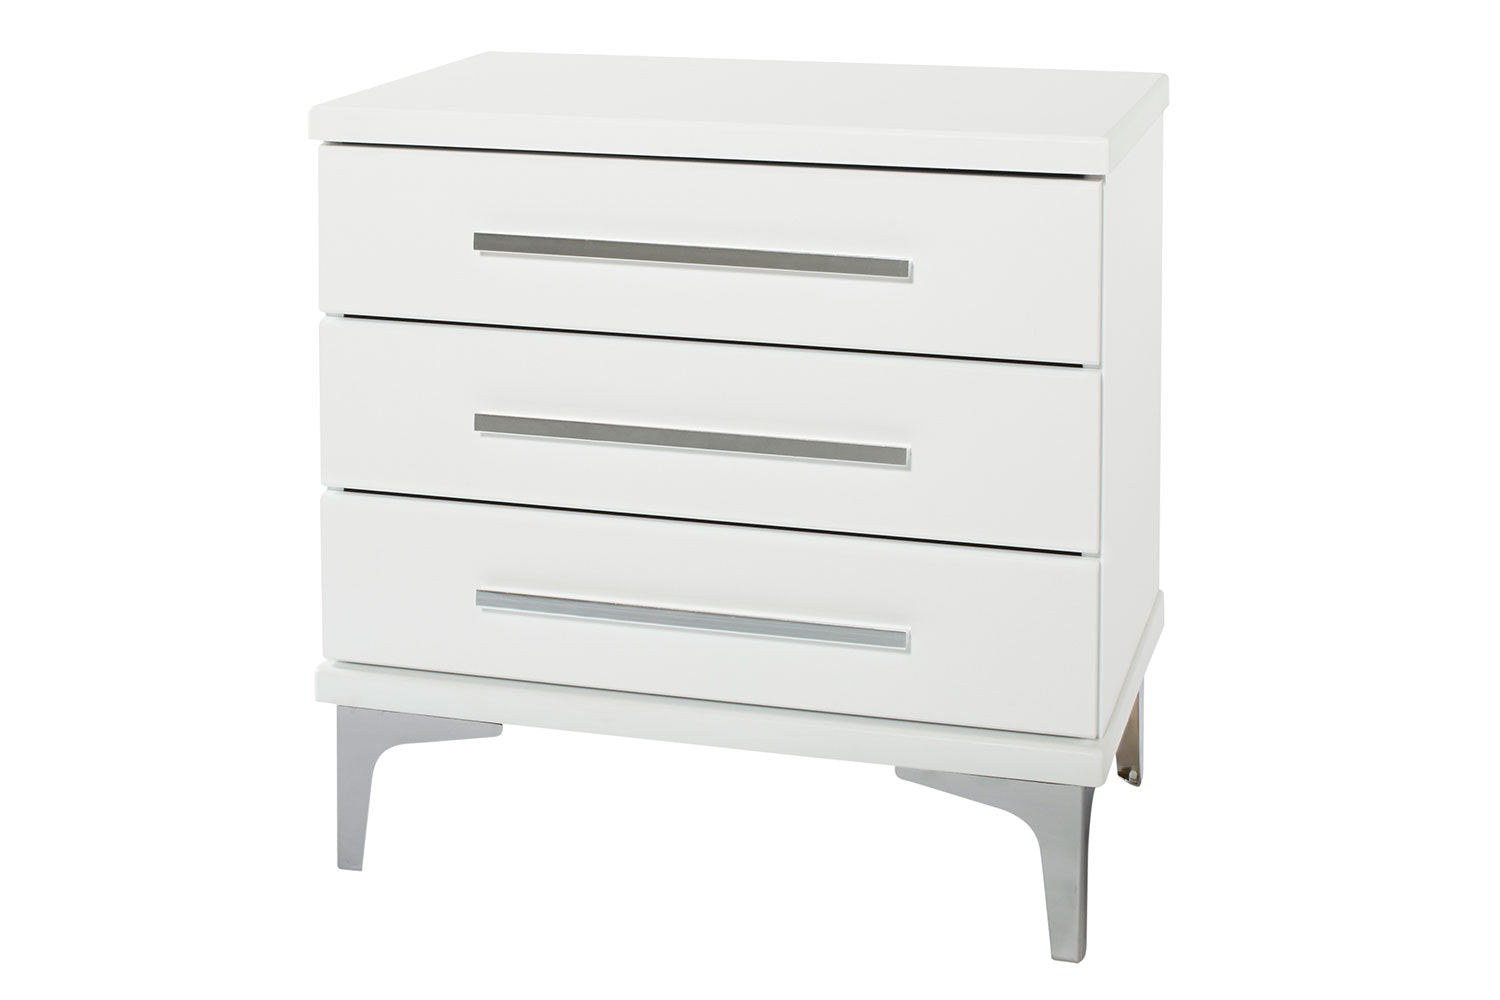 Salento 3 Drawer Bedside Table by Compac Furniture - Chrome